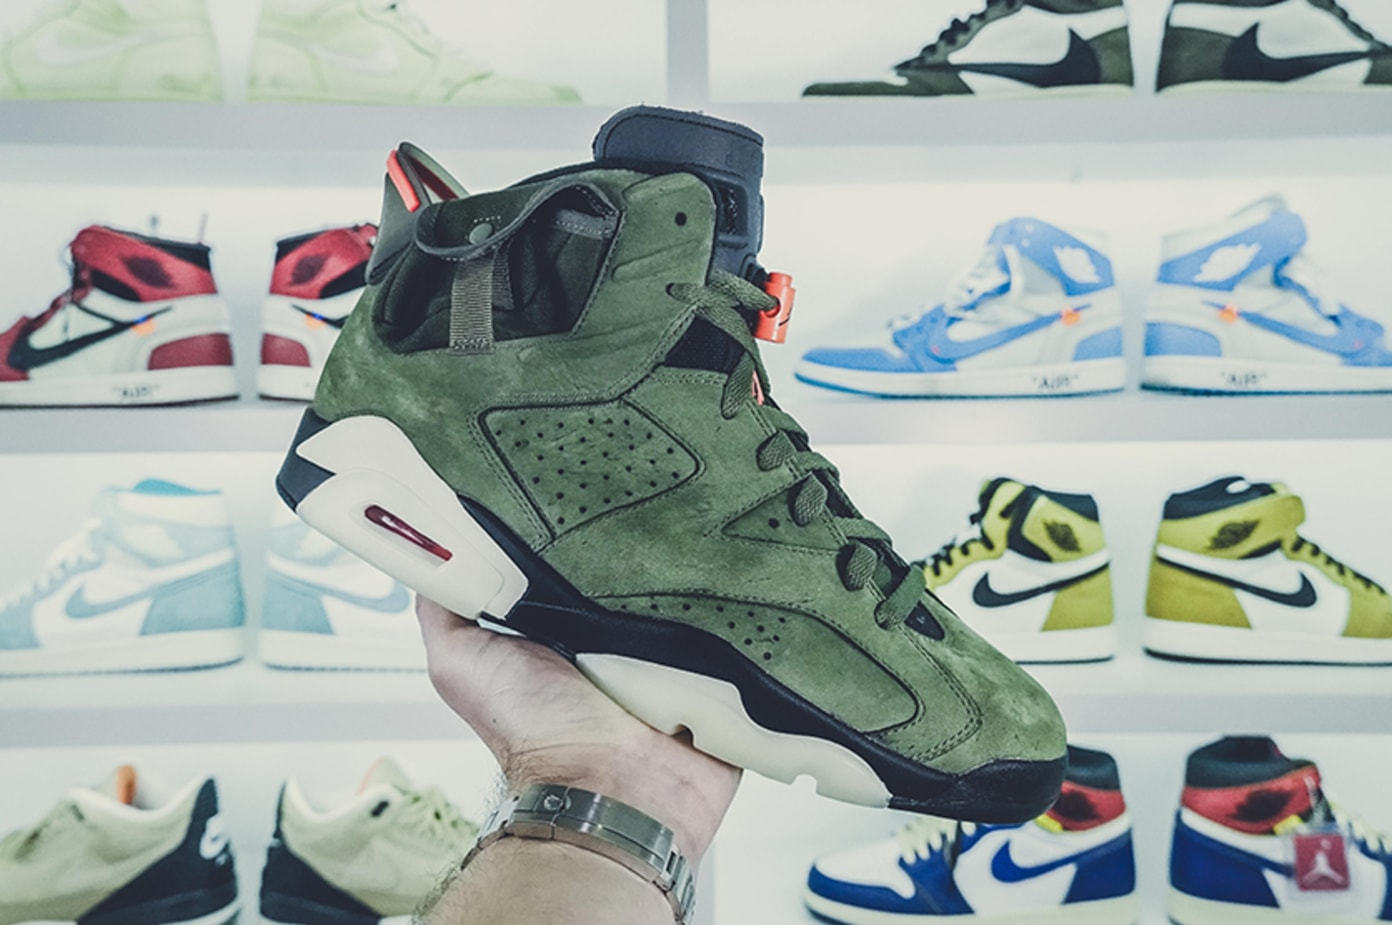 Sneaker Stories Gives Us an Early Look at the Travis Scott x Jordan 6